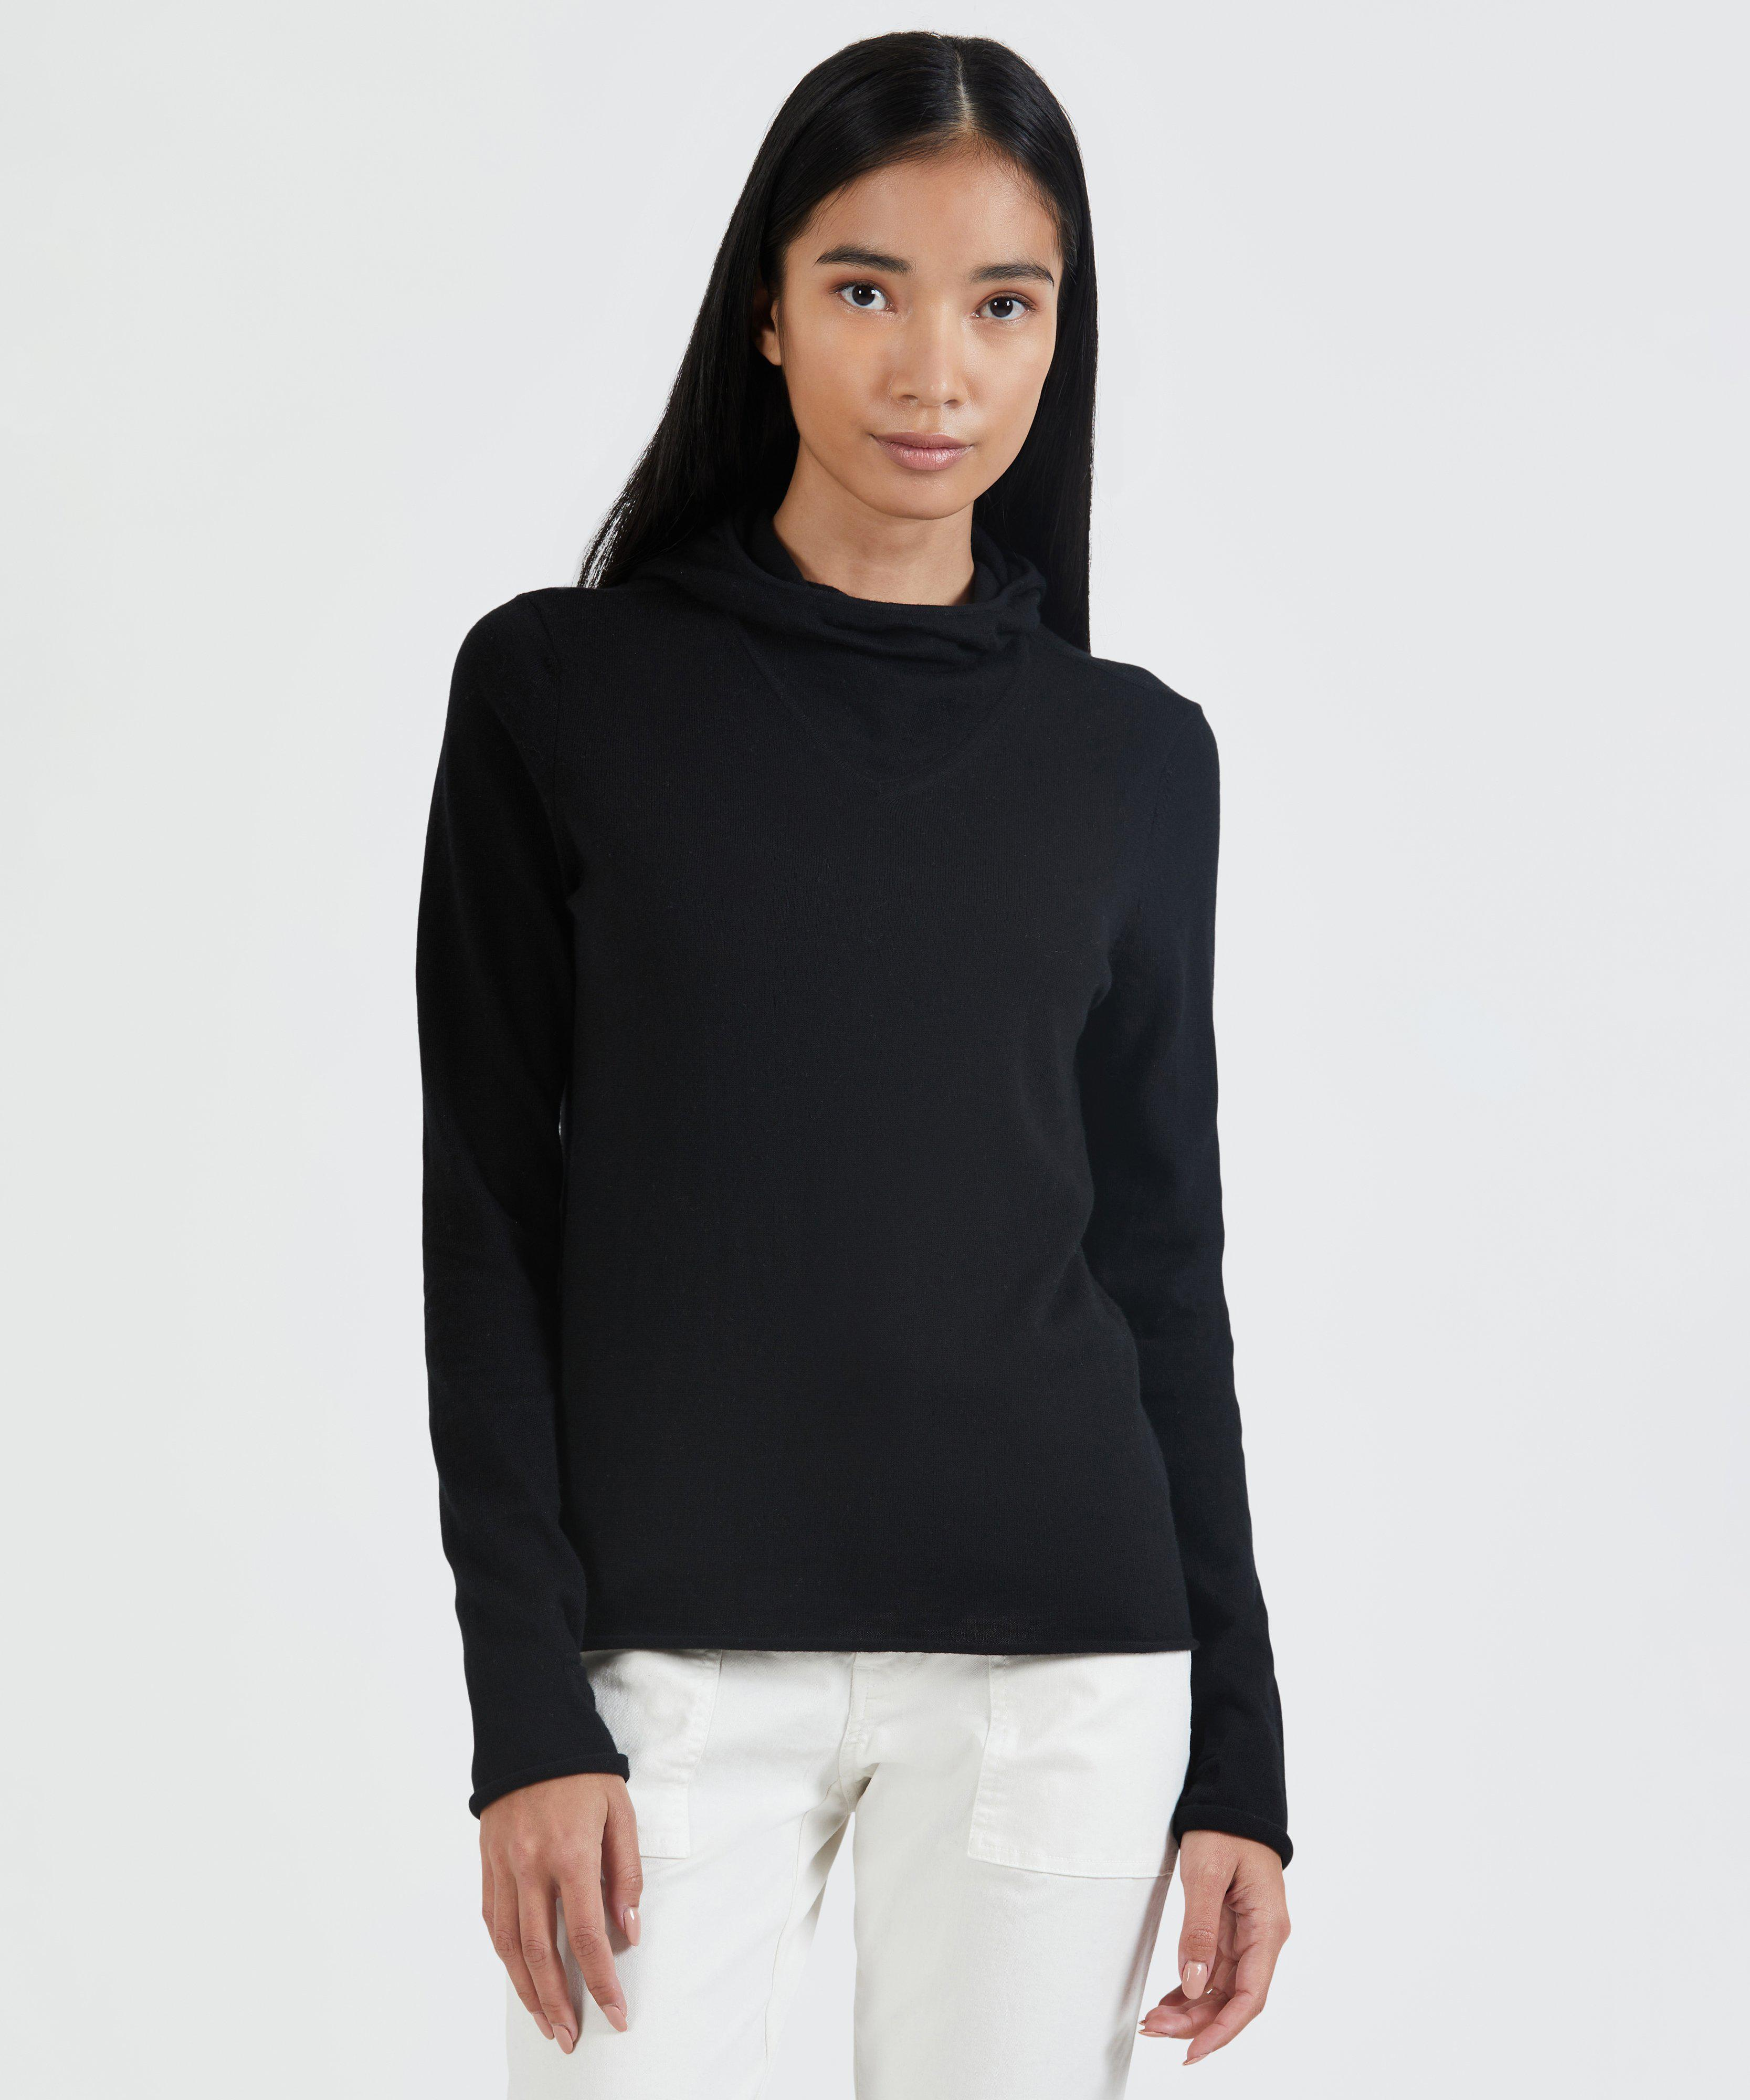 Cotton Cashmere Pull Over Hooded Sweater - Black